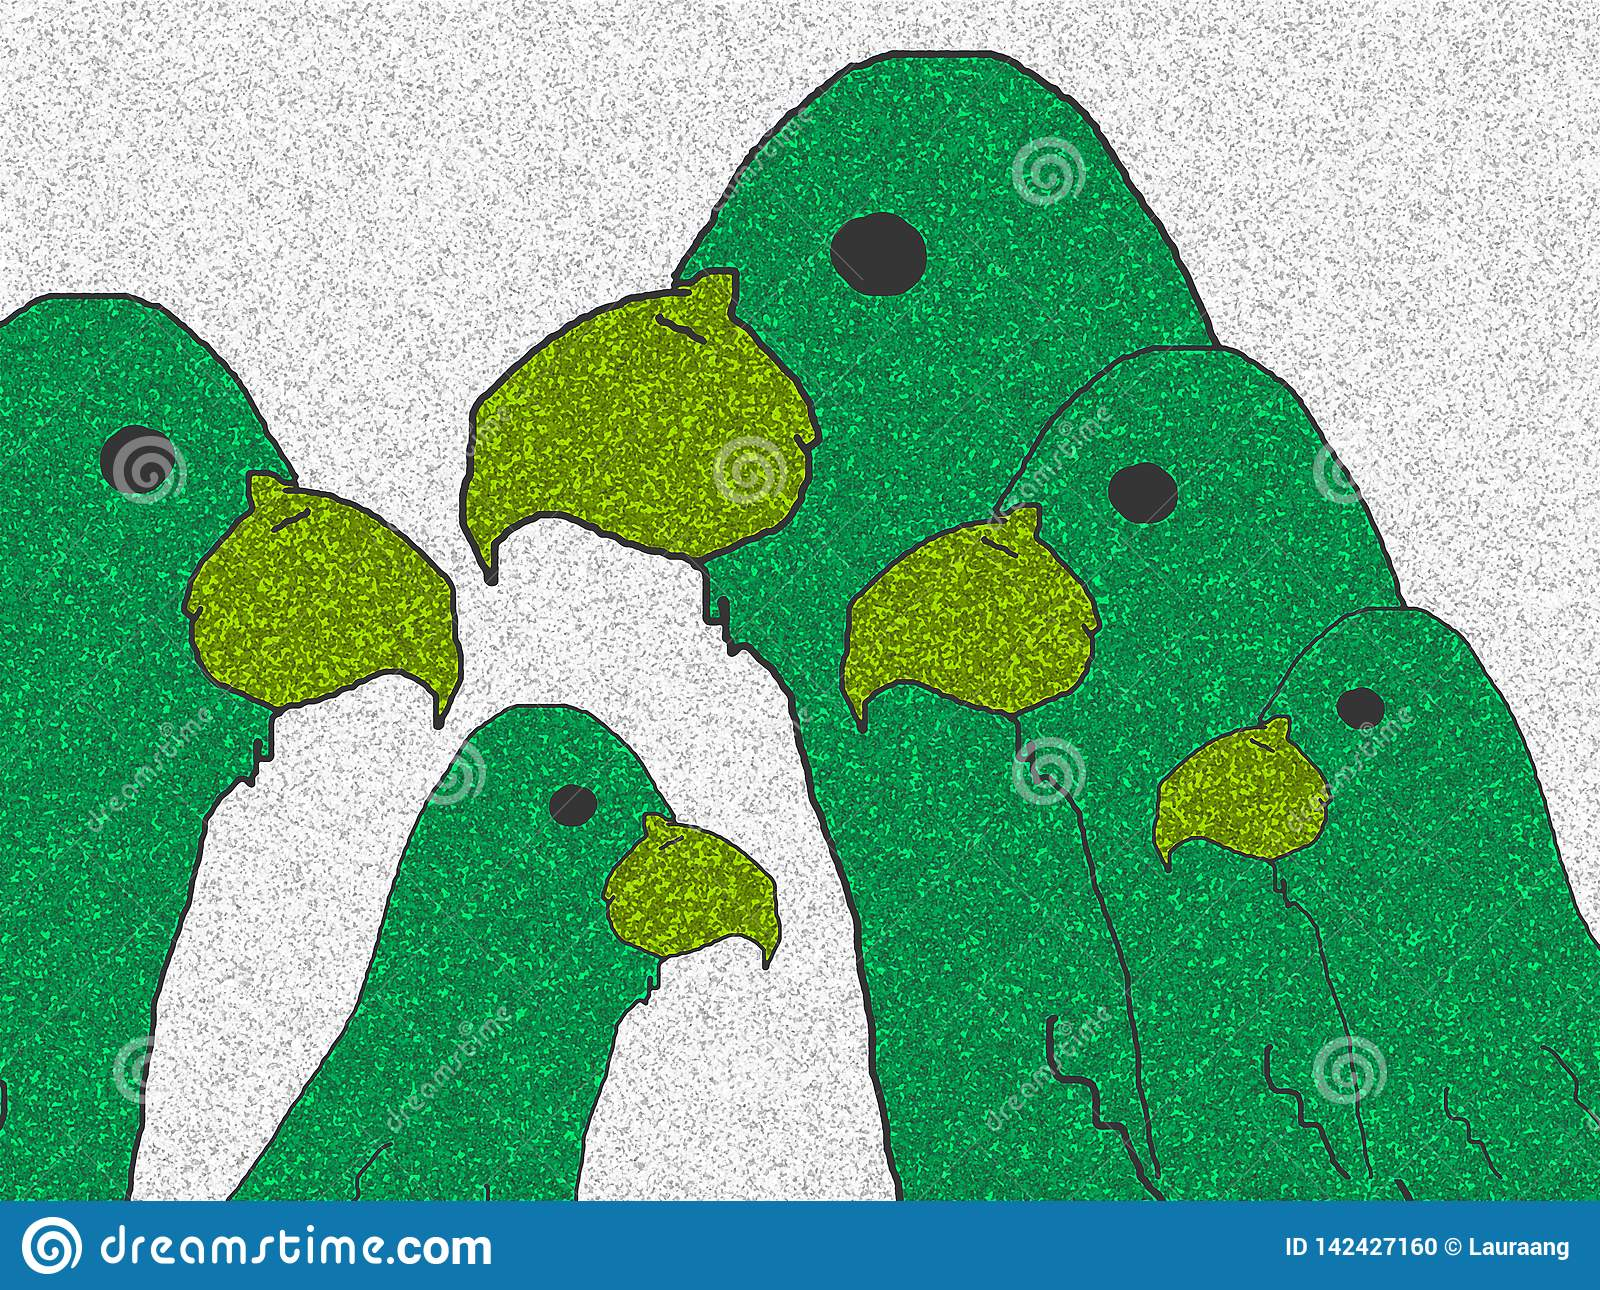 Family of green parrots.